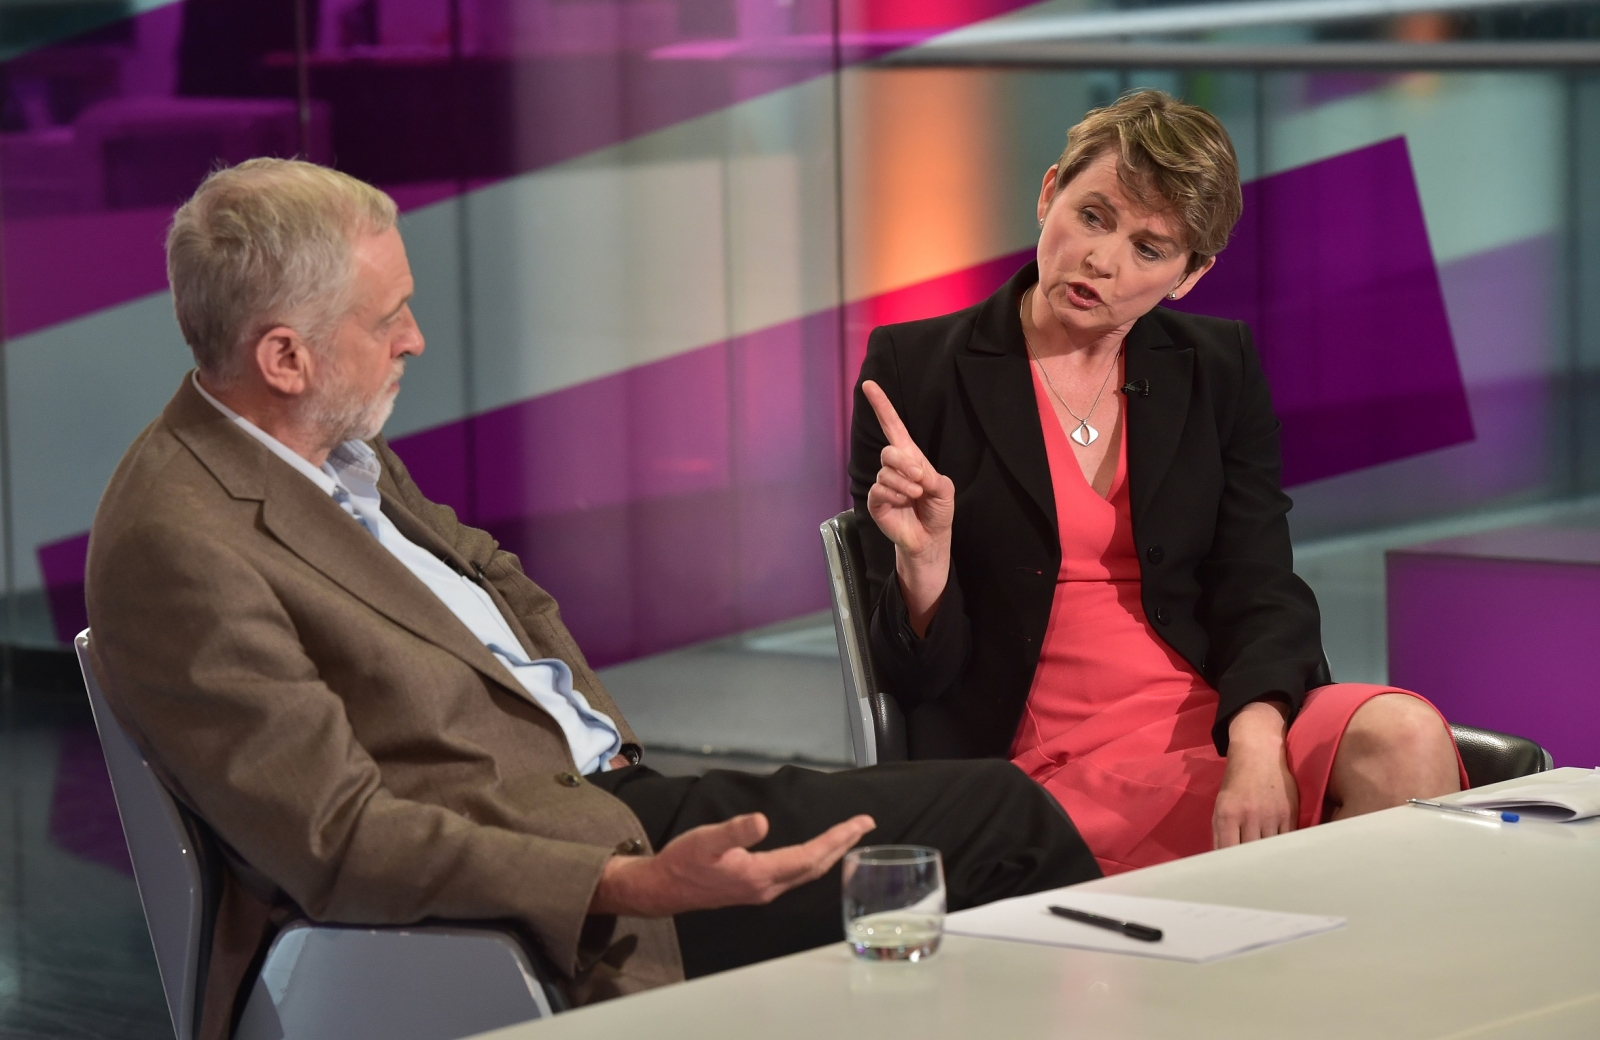 Jeremy Corbyn and Yvette Cooper